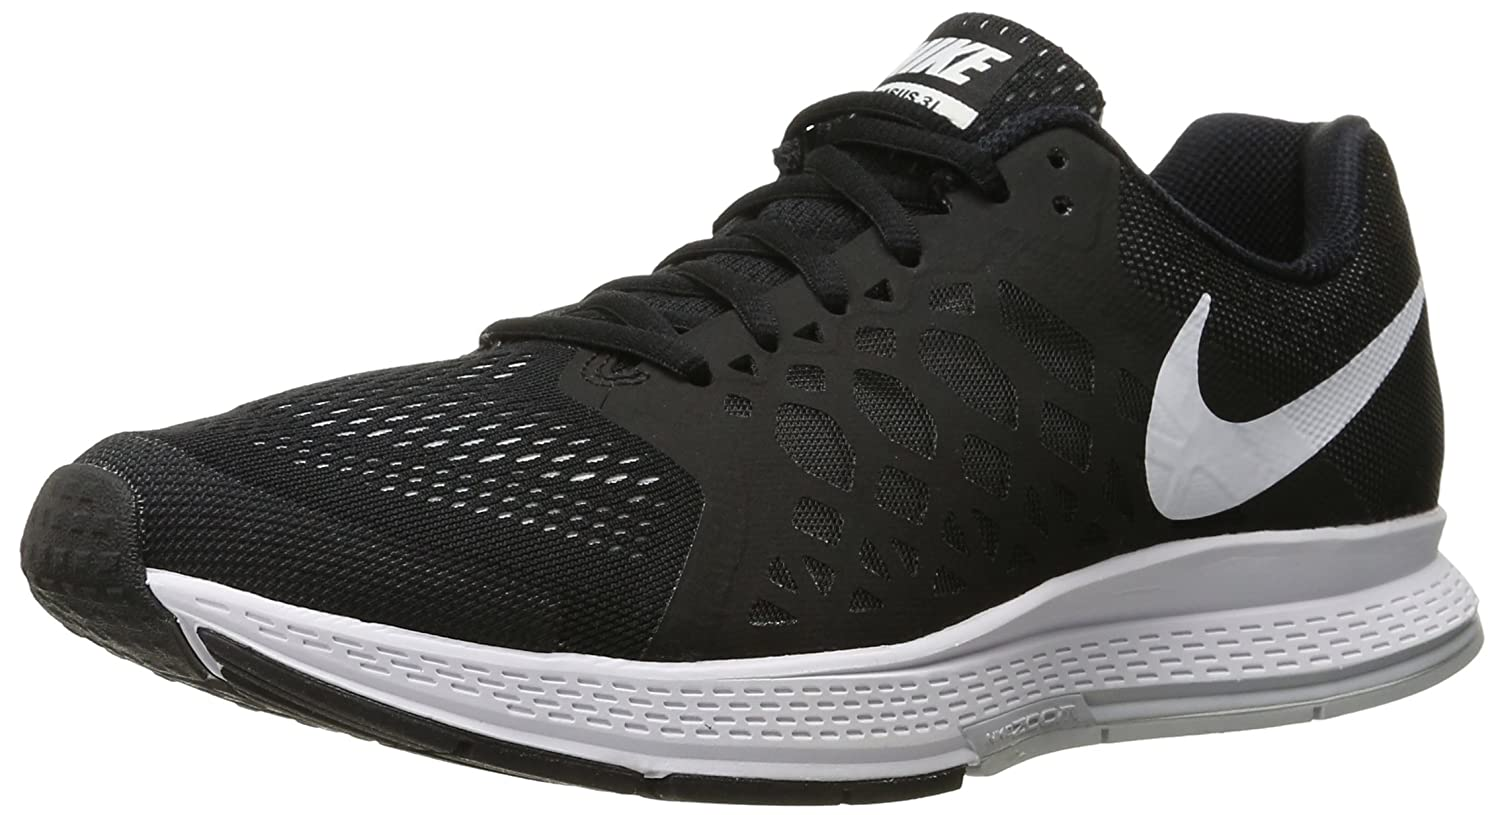 hot sale online df833 fc7c2 Nike Men s Zoom Pegasus 31 Black, White Running Shoes -7 UK India (41 EU)(8  US)  Buy Online at Low Prices in India - Amazon.in